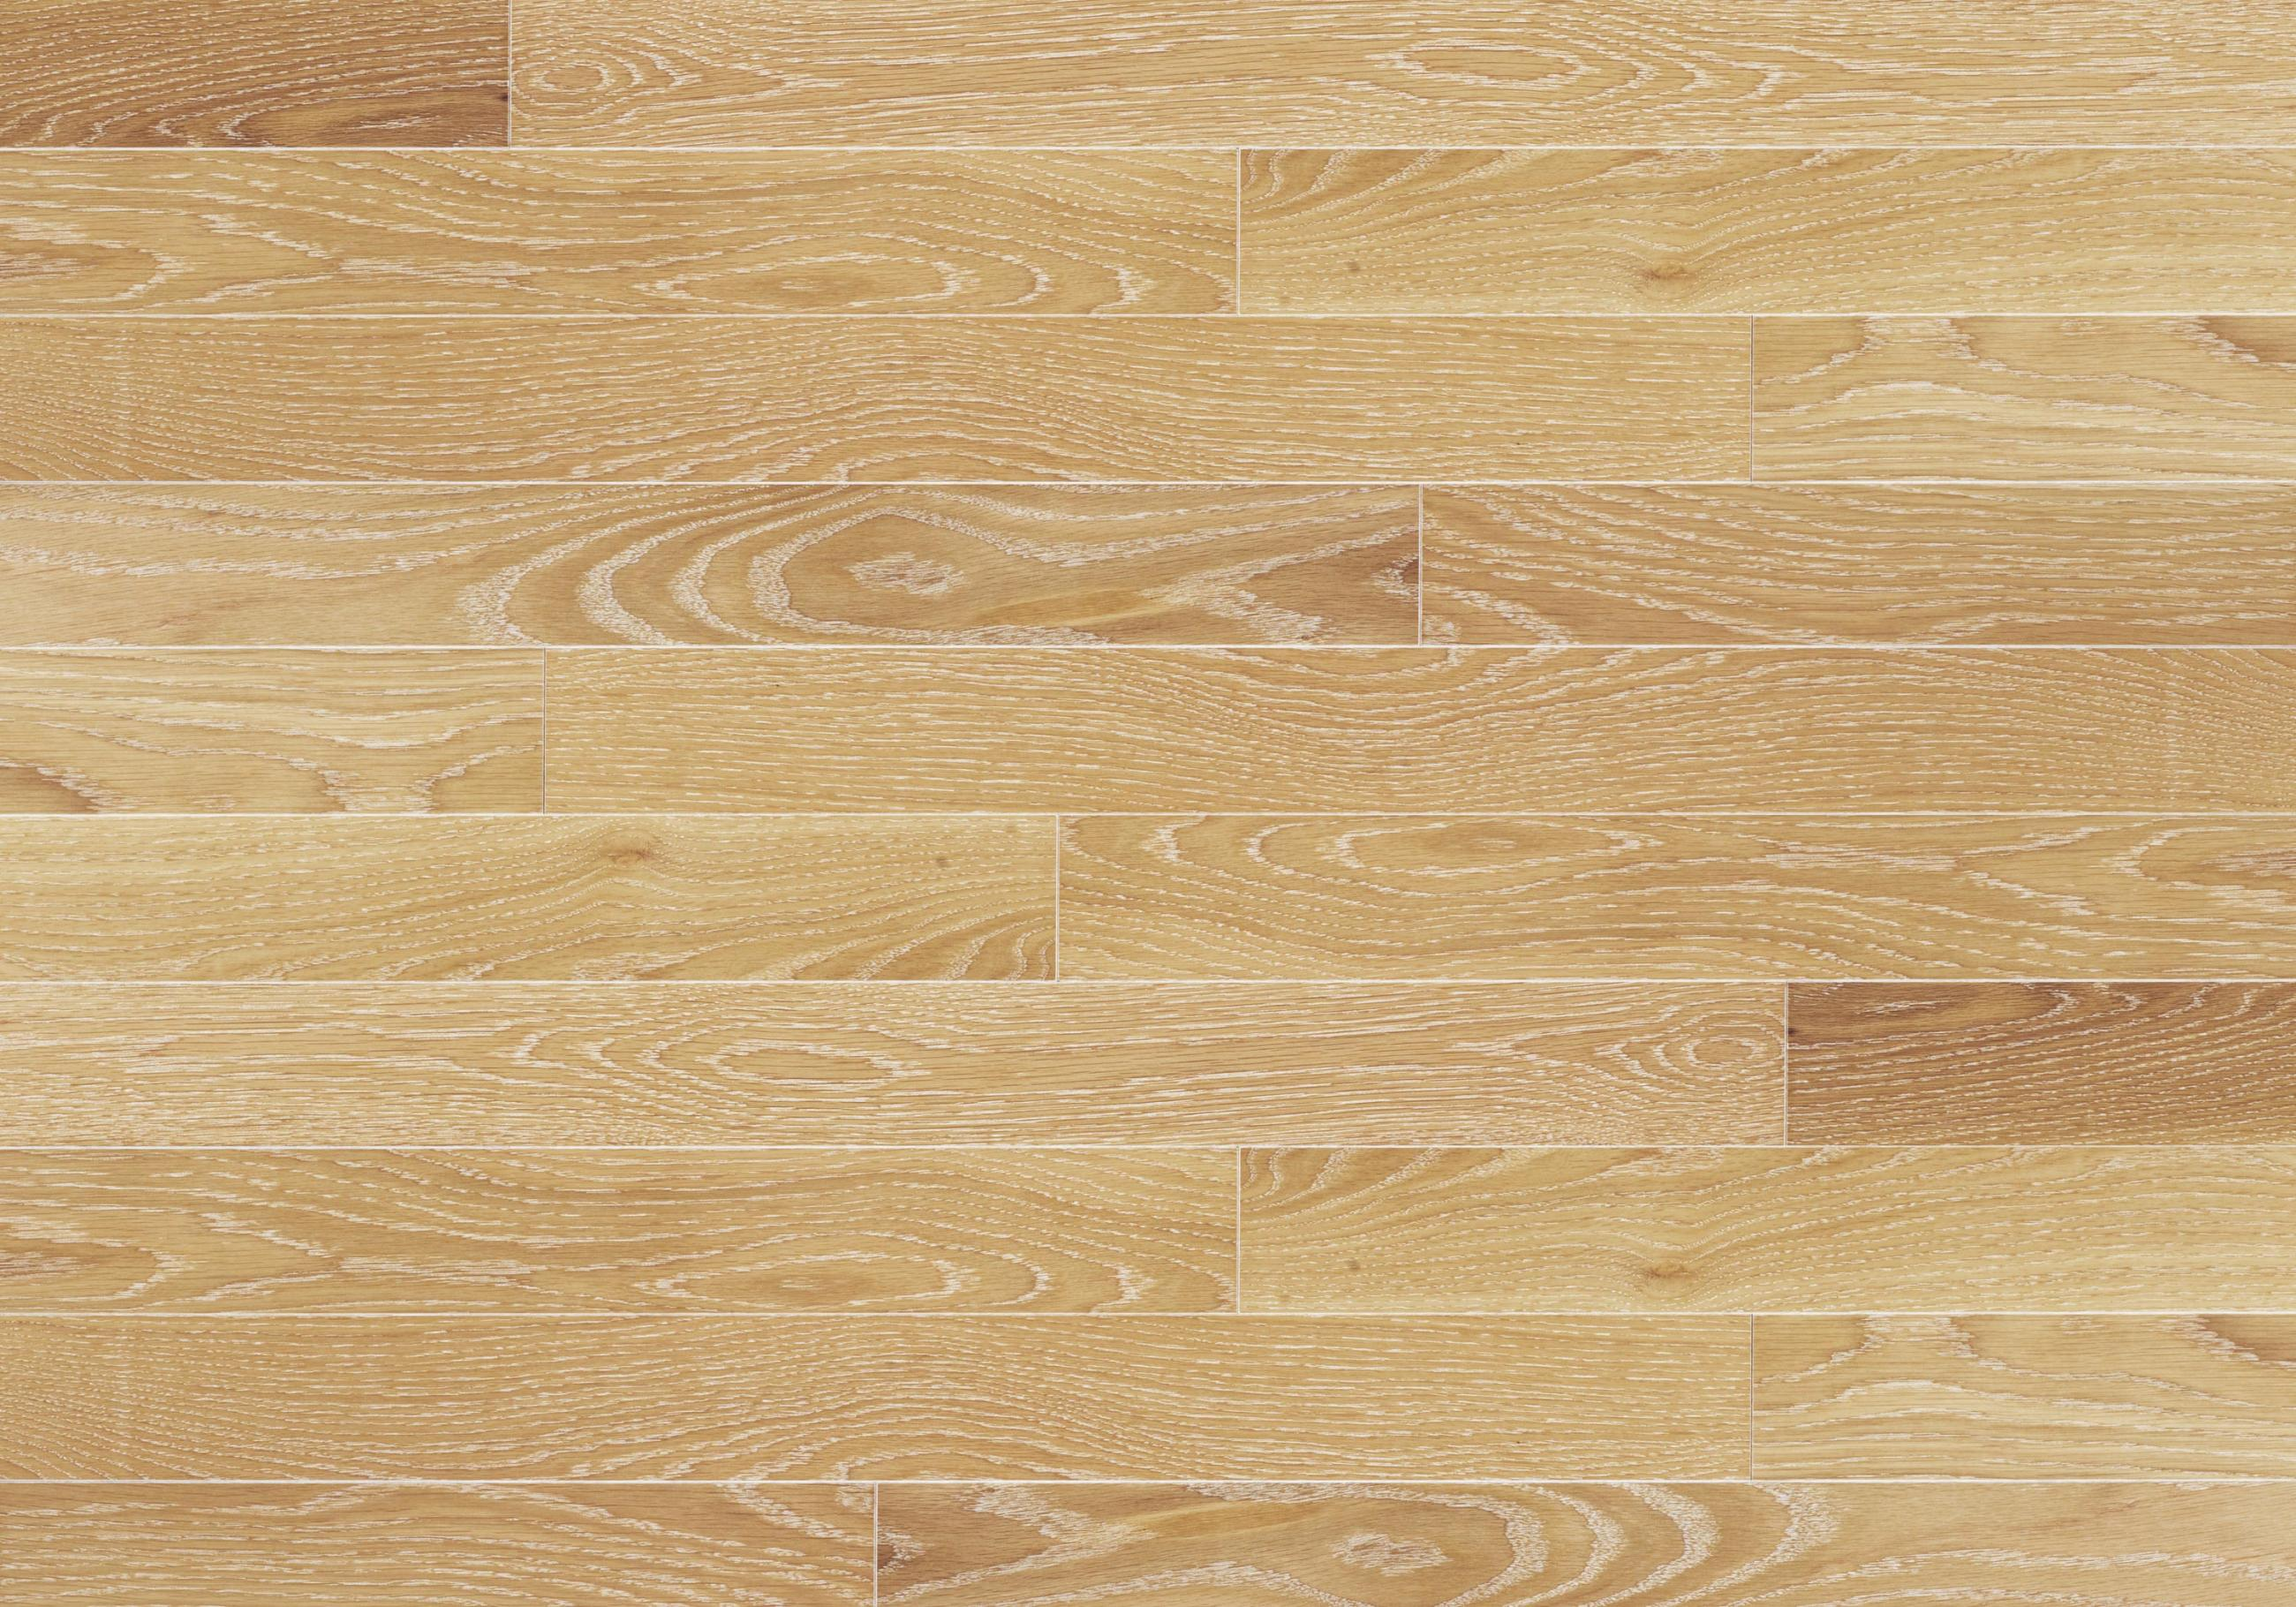 Hardwood Floor Texture Selected Engineered Flooring Samples